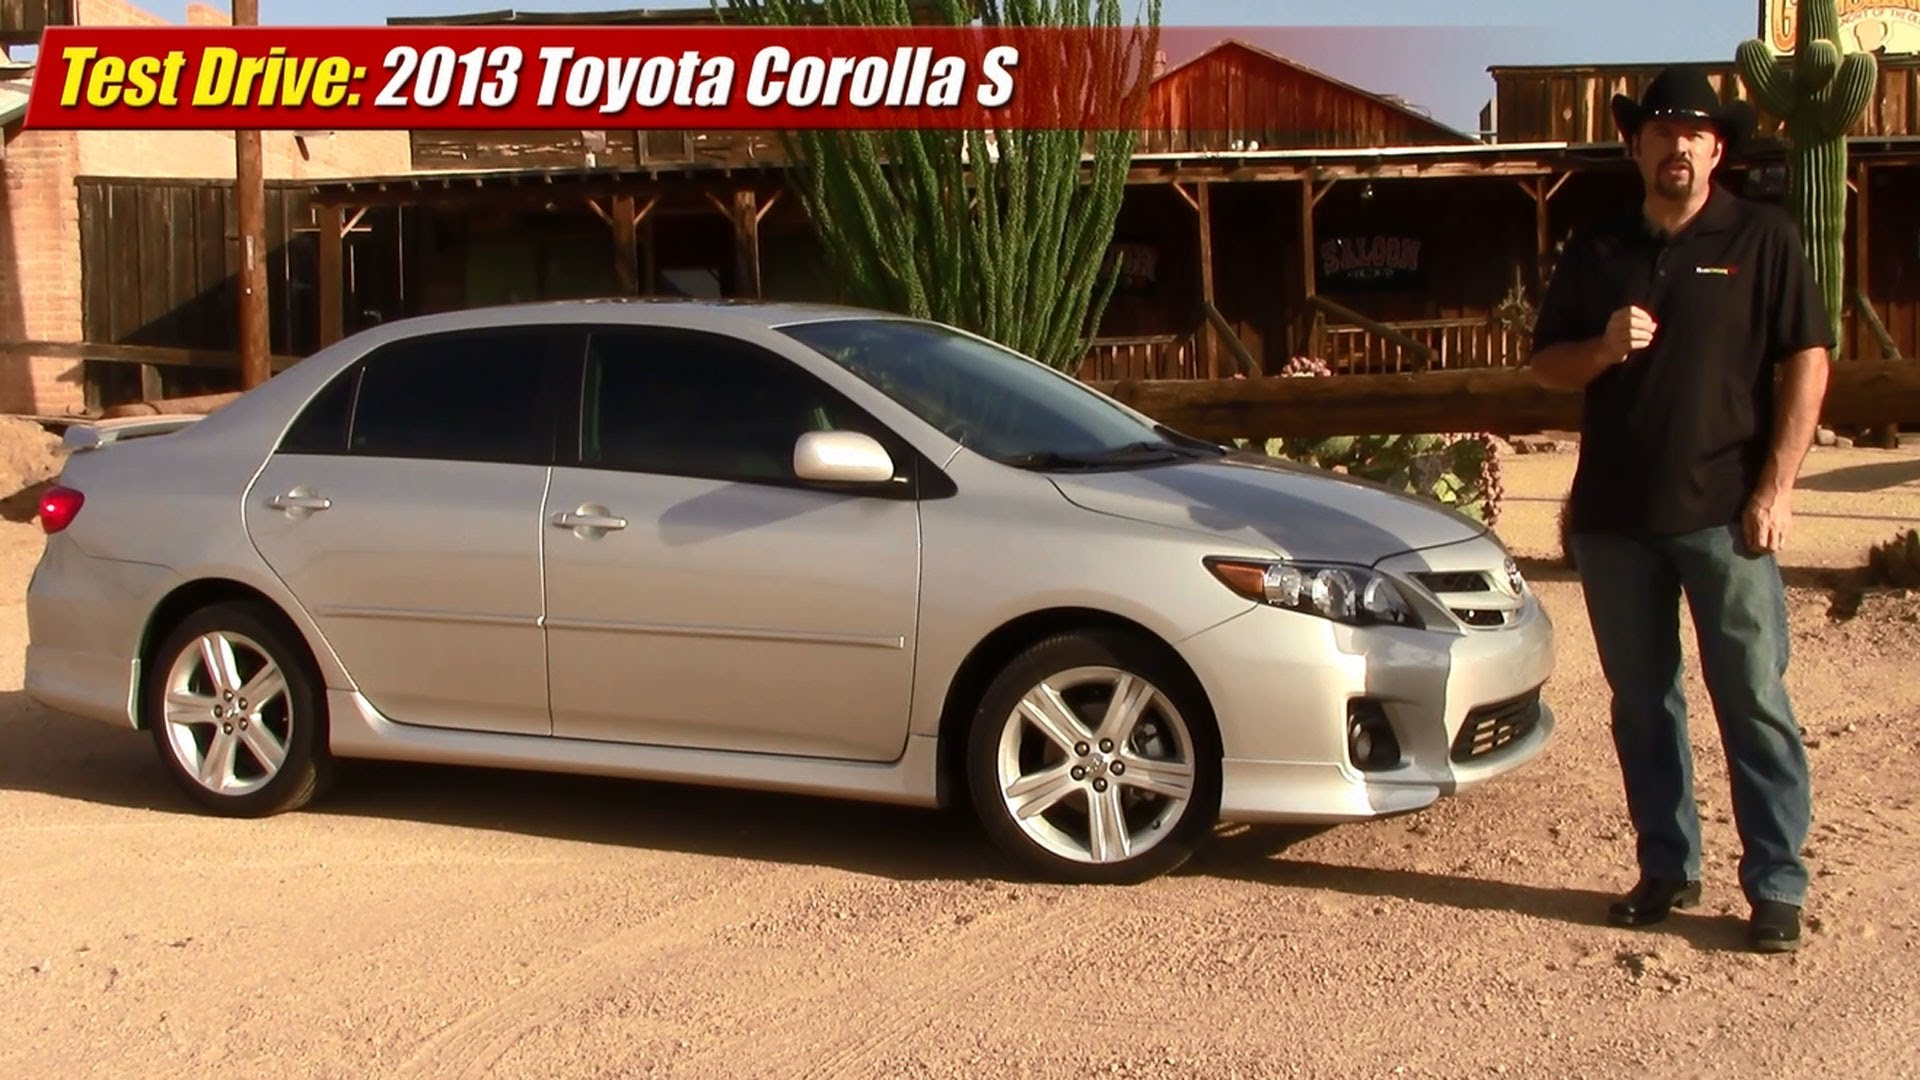 re test drive 2013 toyota corolla s pictures to pin on pinterest. Black Bedroom Furniture Sets. Home Design Ideas